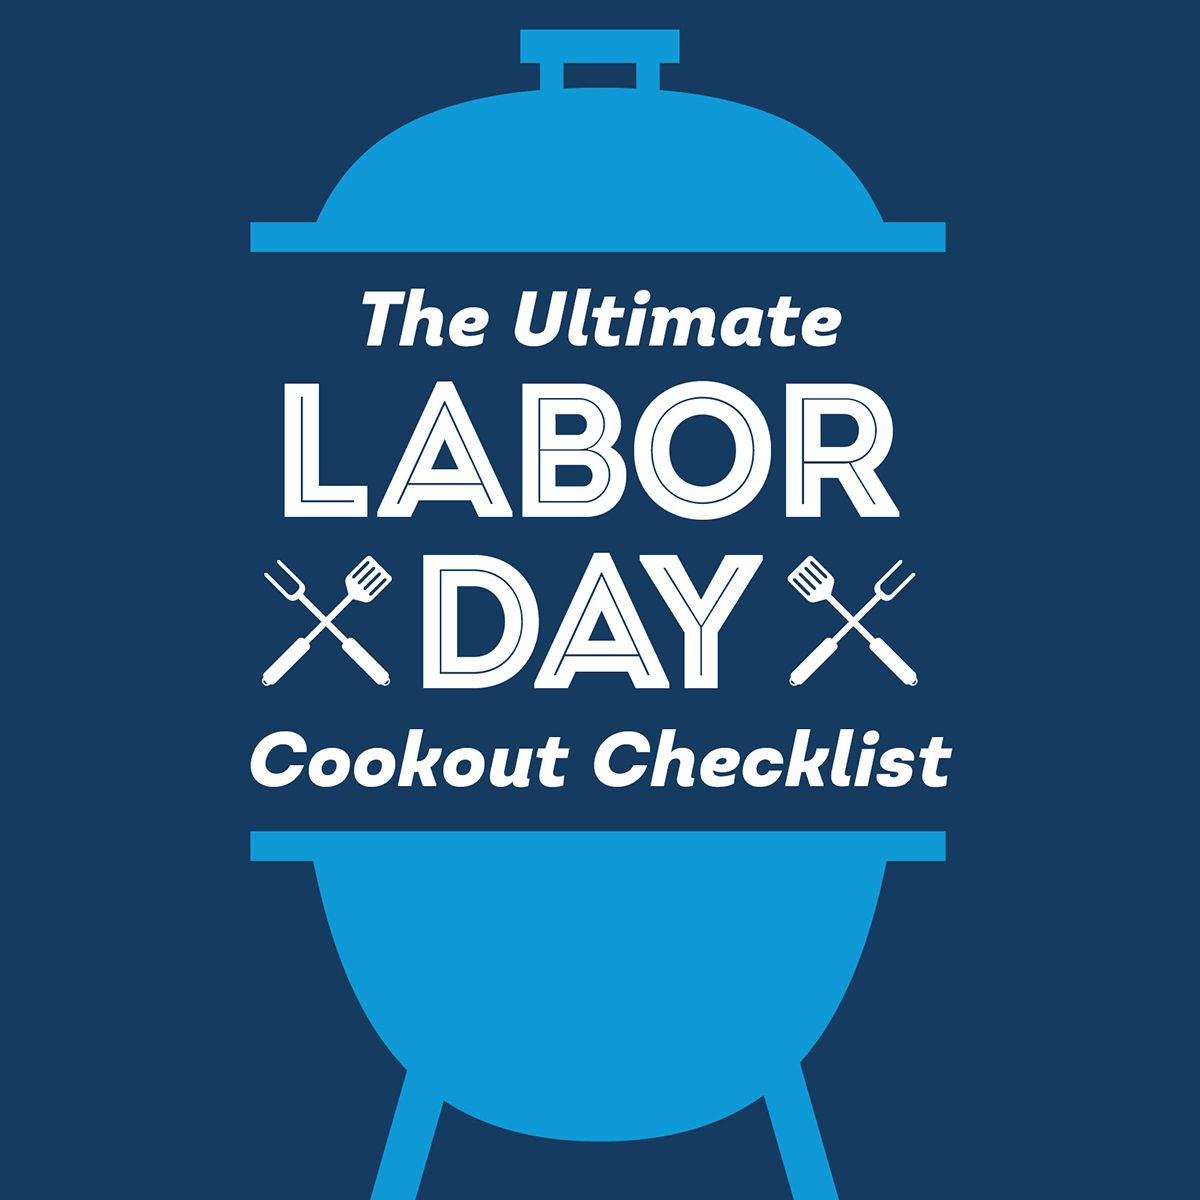 The Ultimate Labor Day Cookout Checklist The Open Door By Lennar Cookout Checklist Cookout Cookout Food